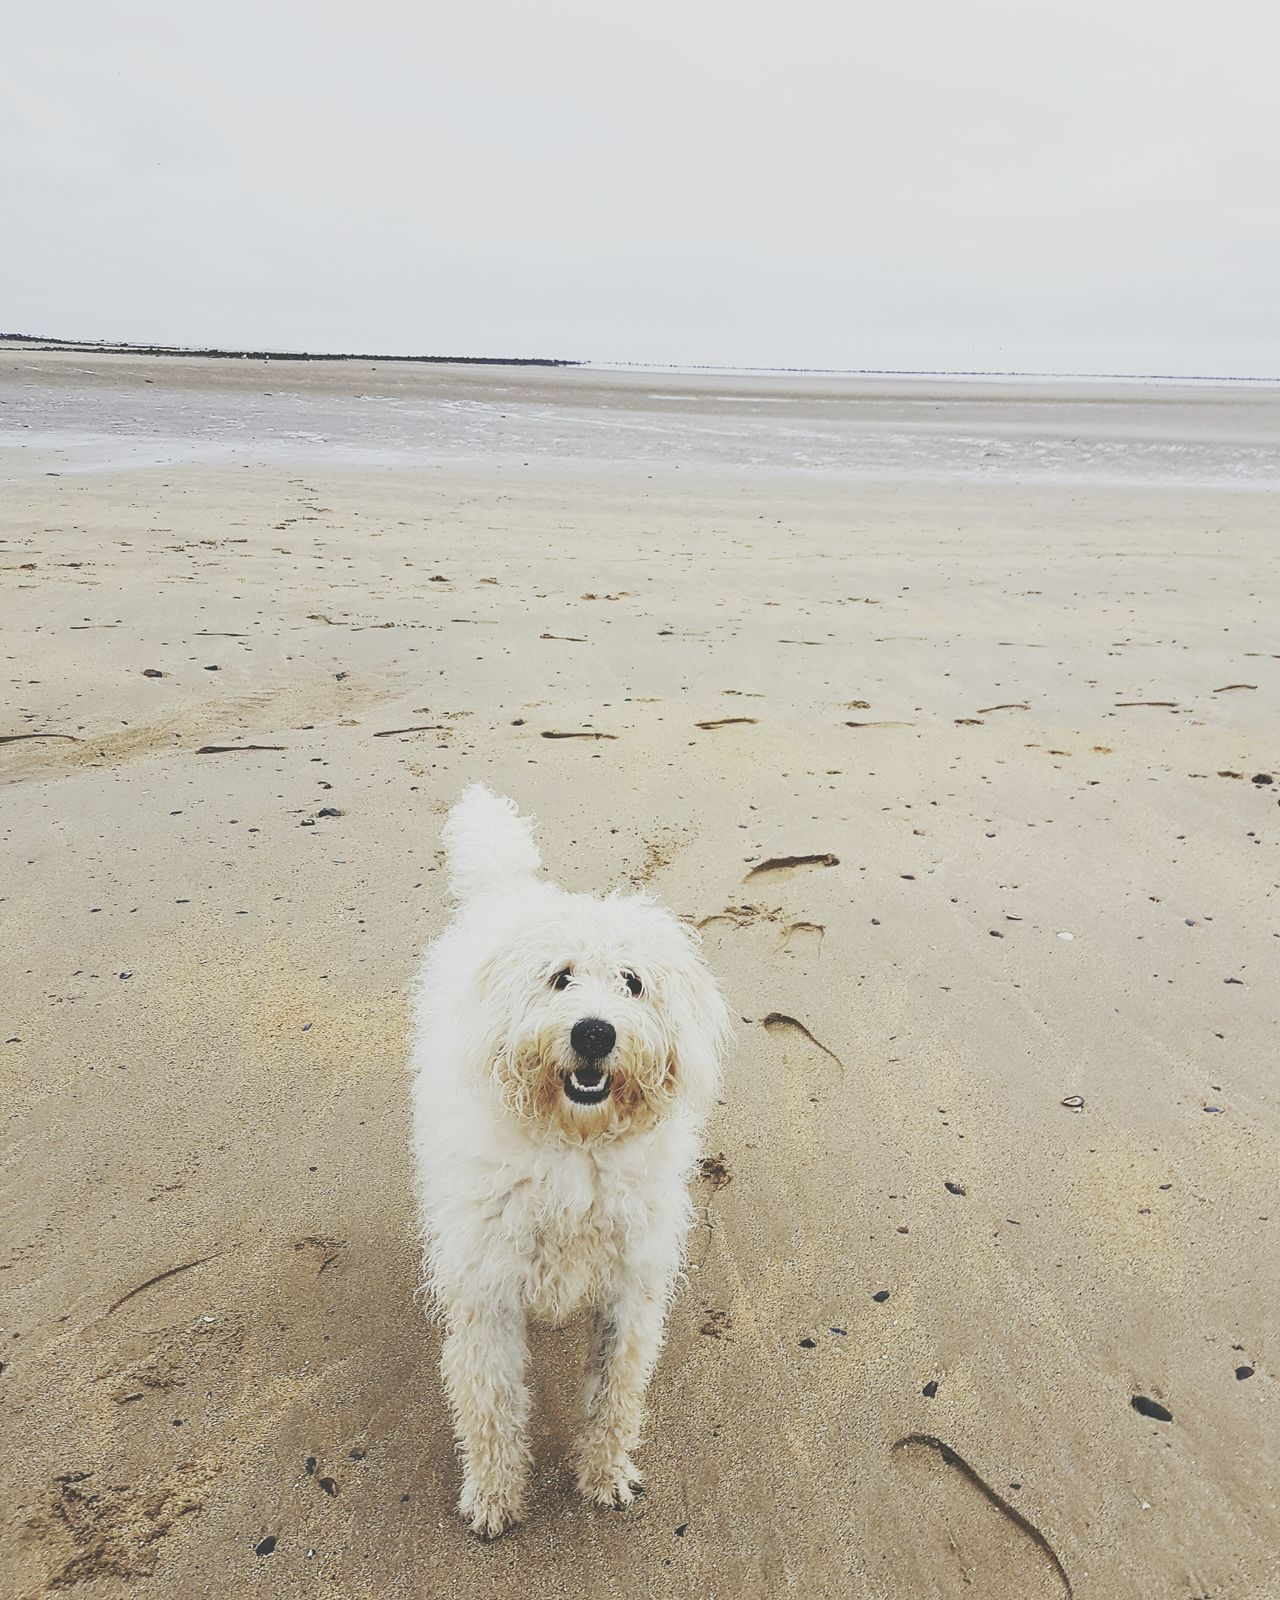 Beach Sea Sand Nature One Animal Dog Horizon Over Waterq Animal Themes Sky No People Outdoors Domestic Animals Day Fresh Peaceful View Peaceful Moment Relaxing Moments Fresh Air Sea And Sky Peace And Quiet Dog On Beach Northwales Water Cloud - Sky Smile Chill